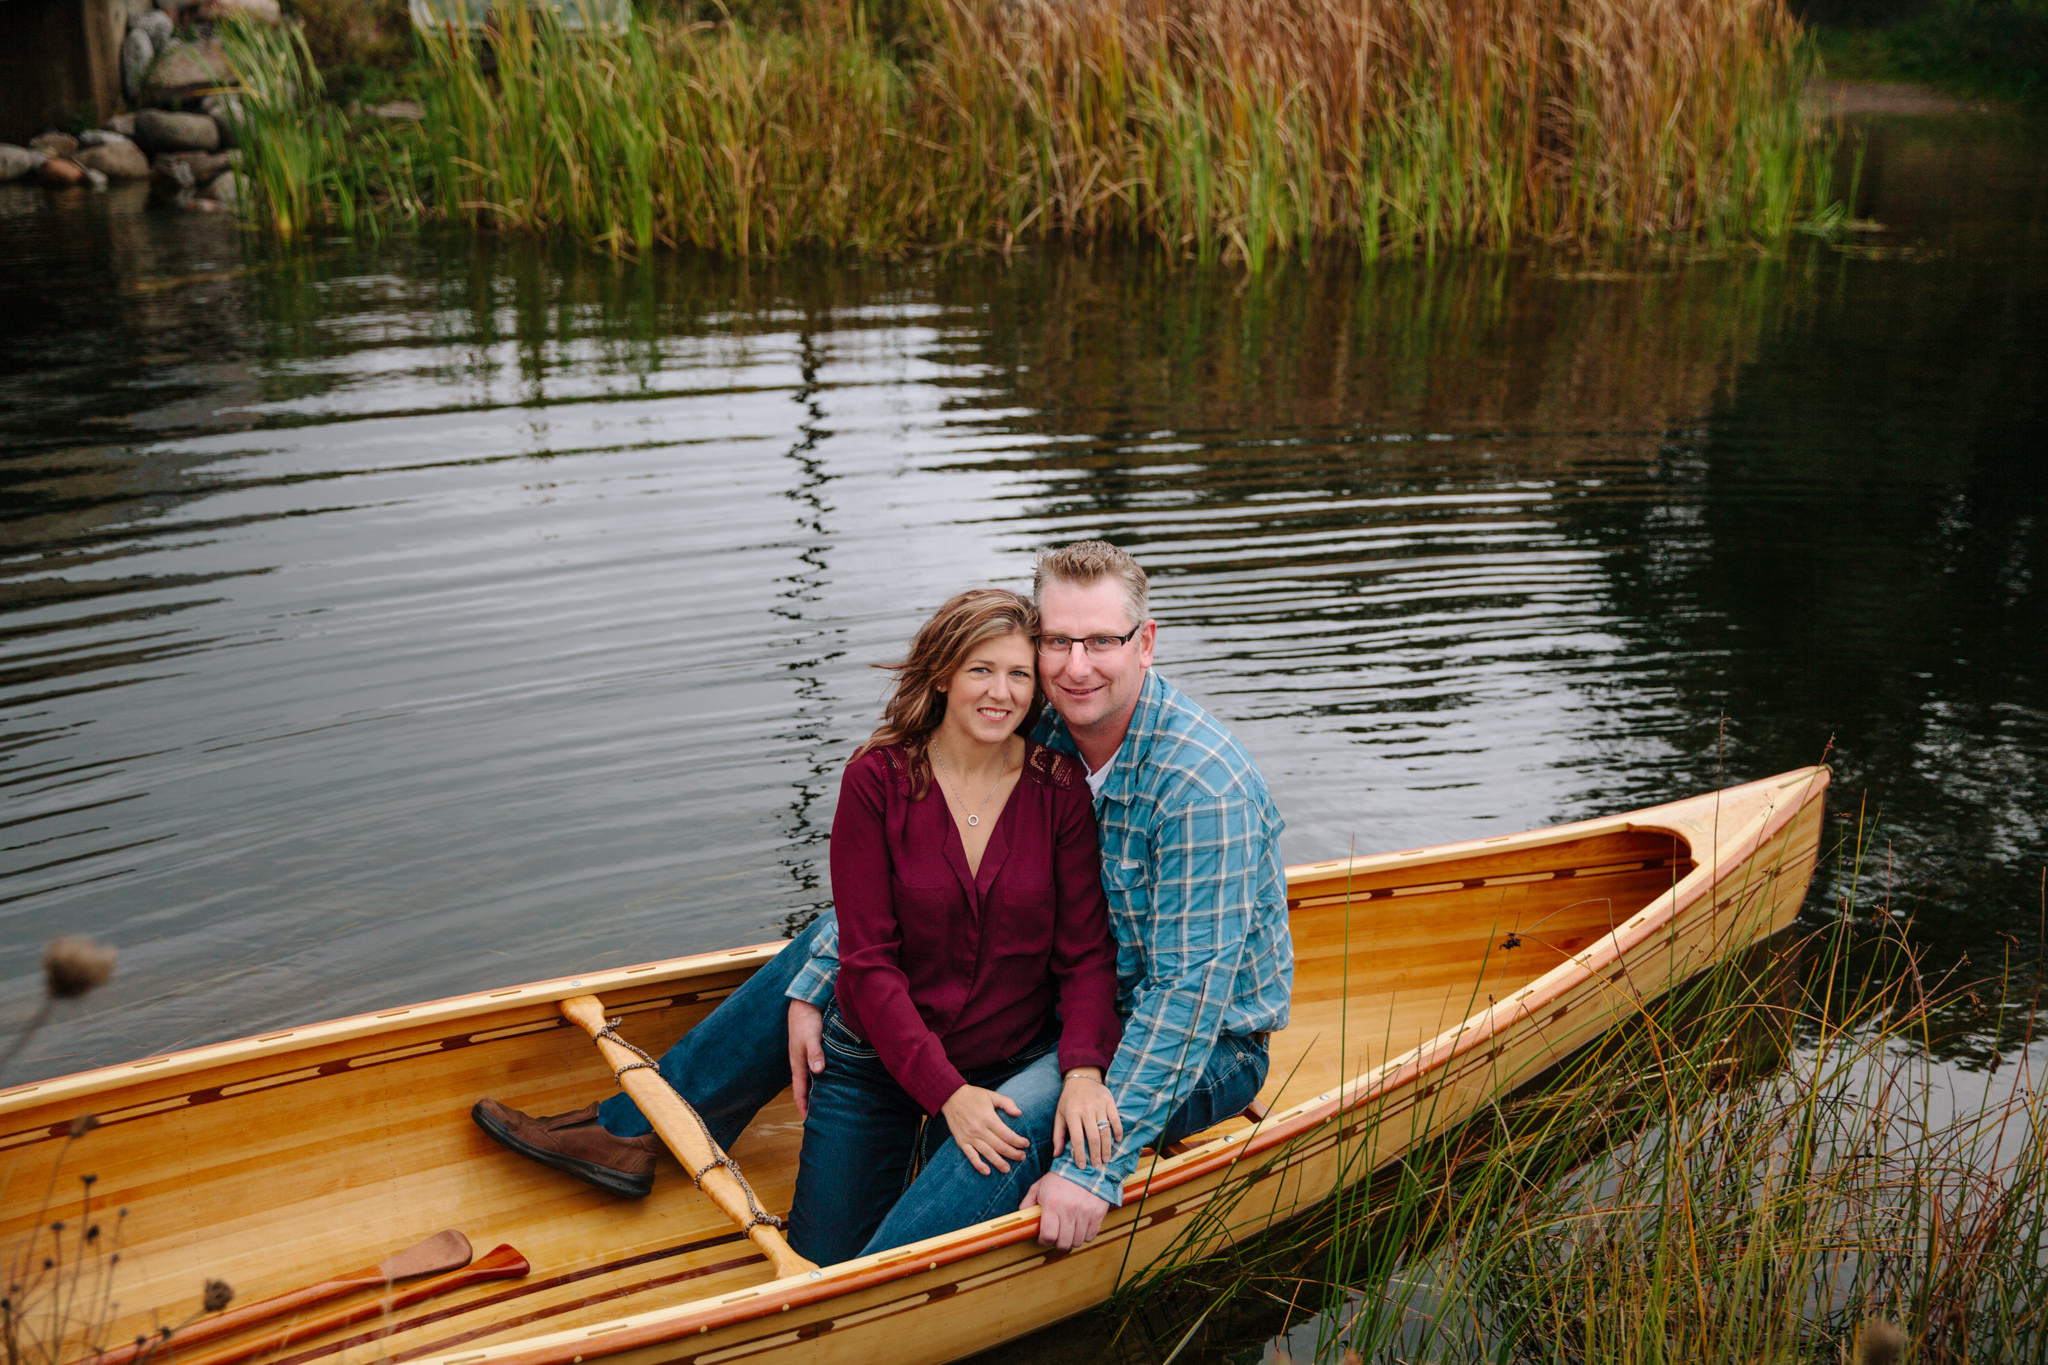 engaged couple smiling in a canoe while in the water on canoe